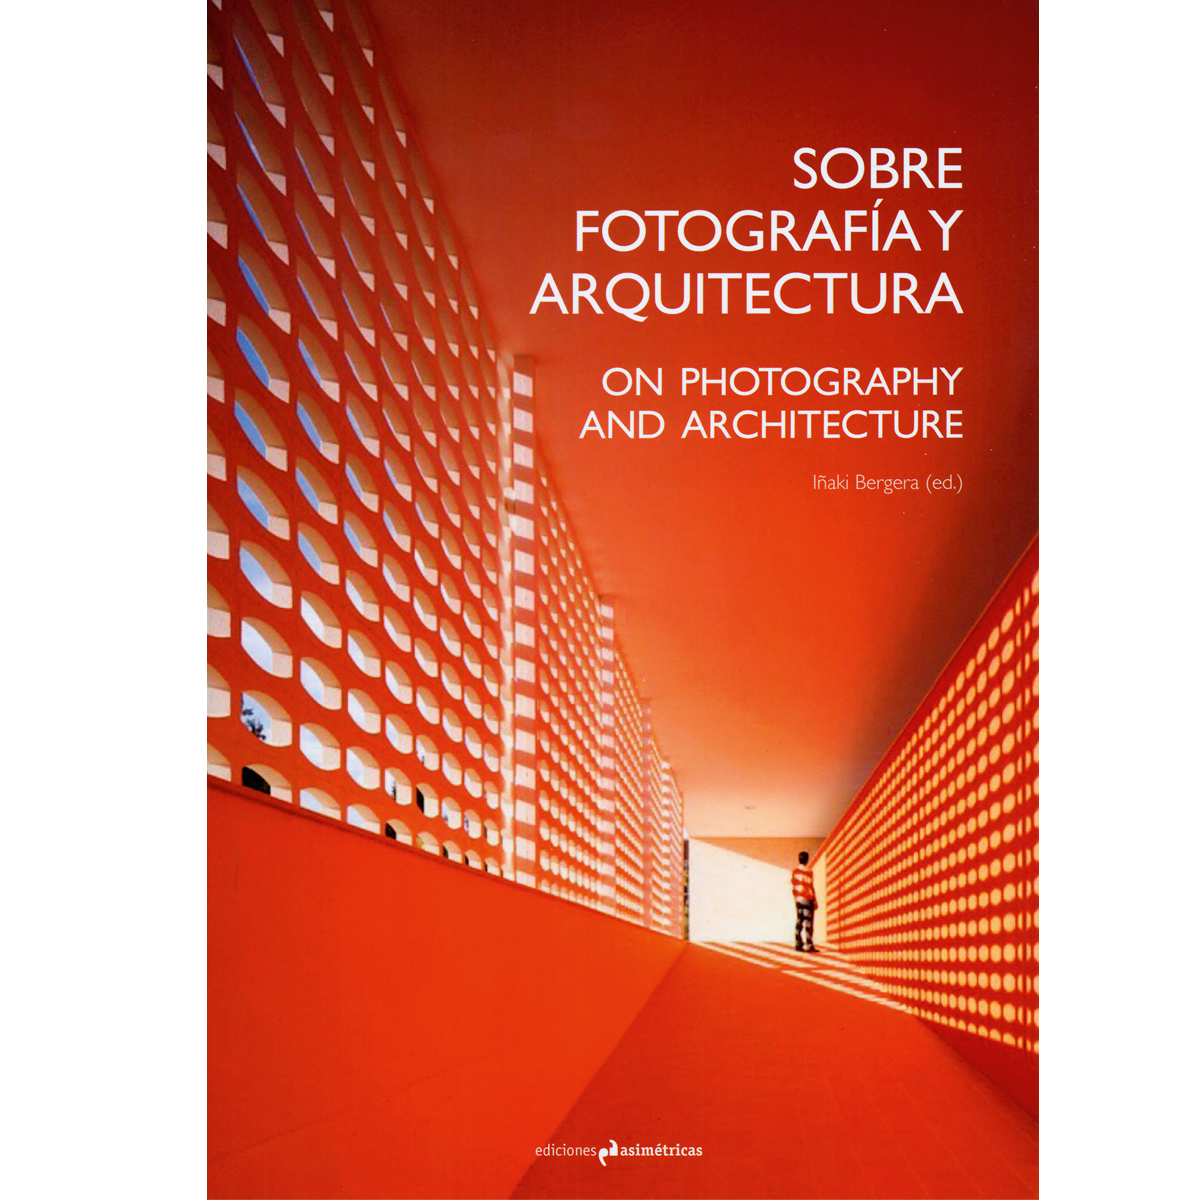 On Photography and Architecture